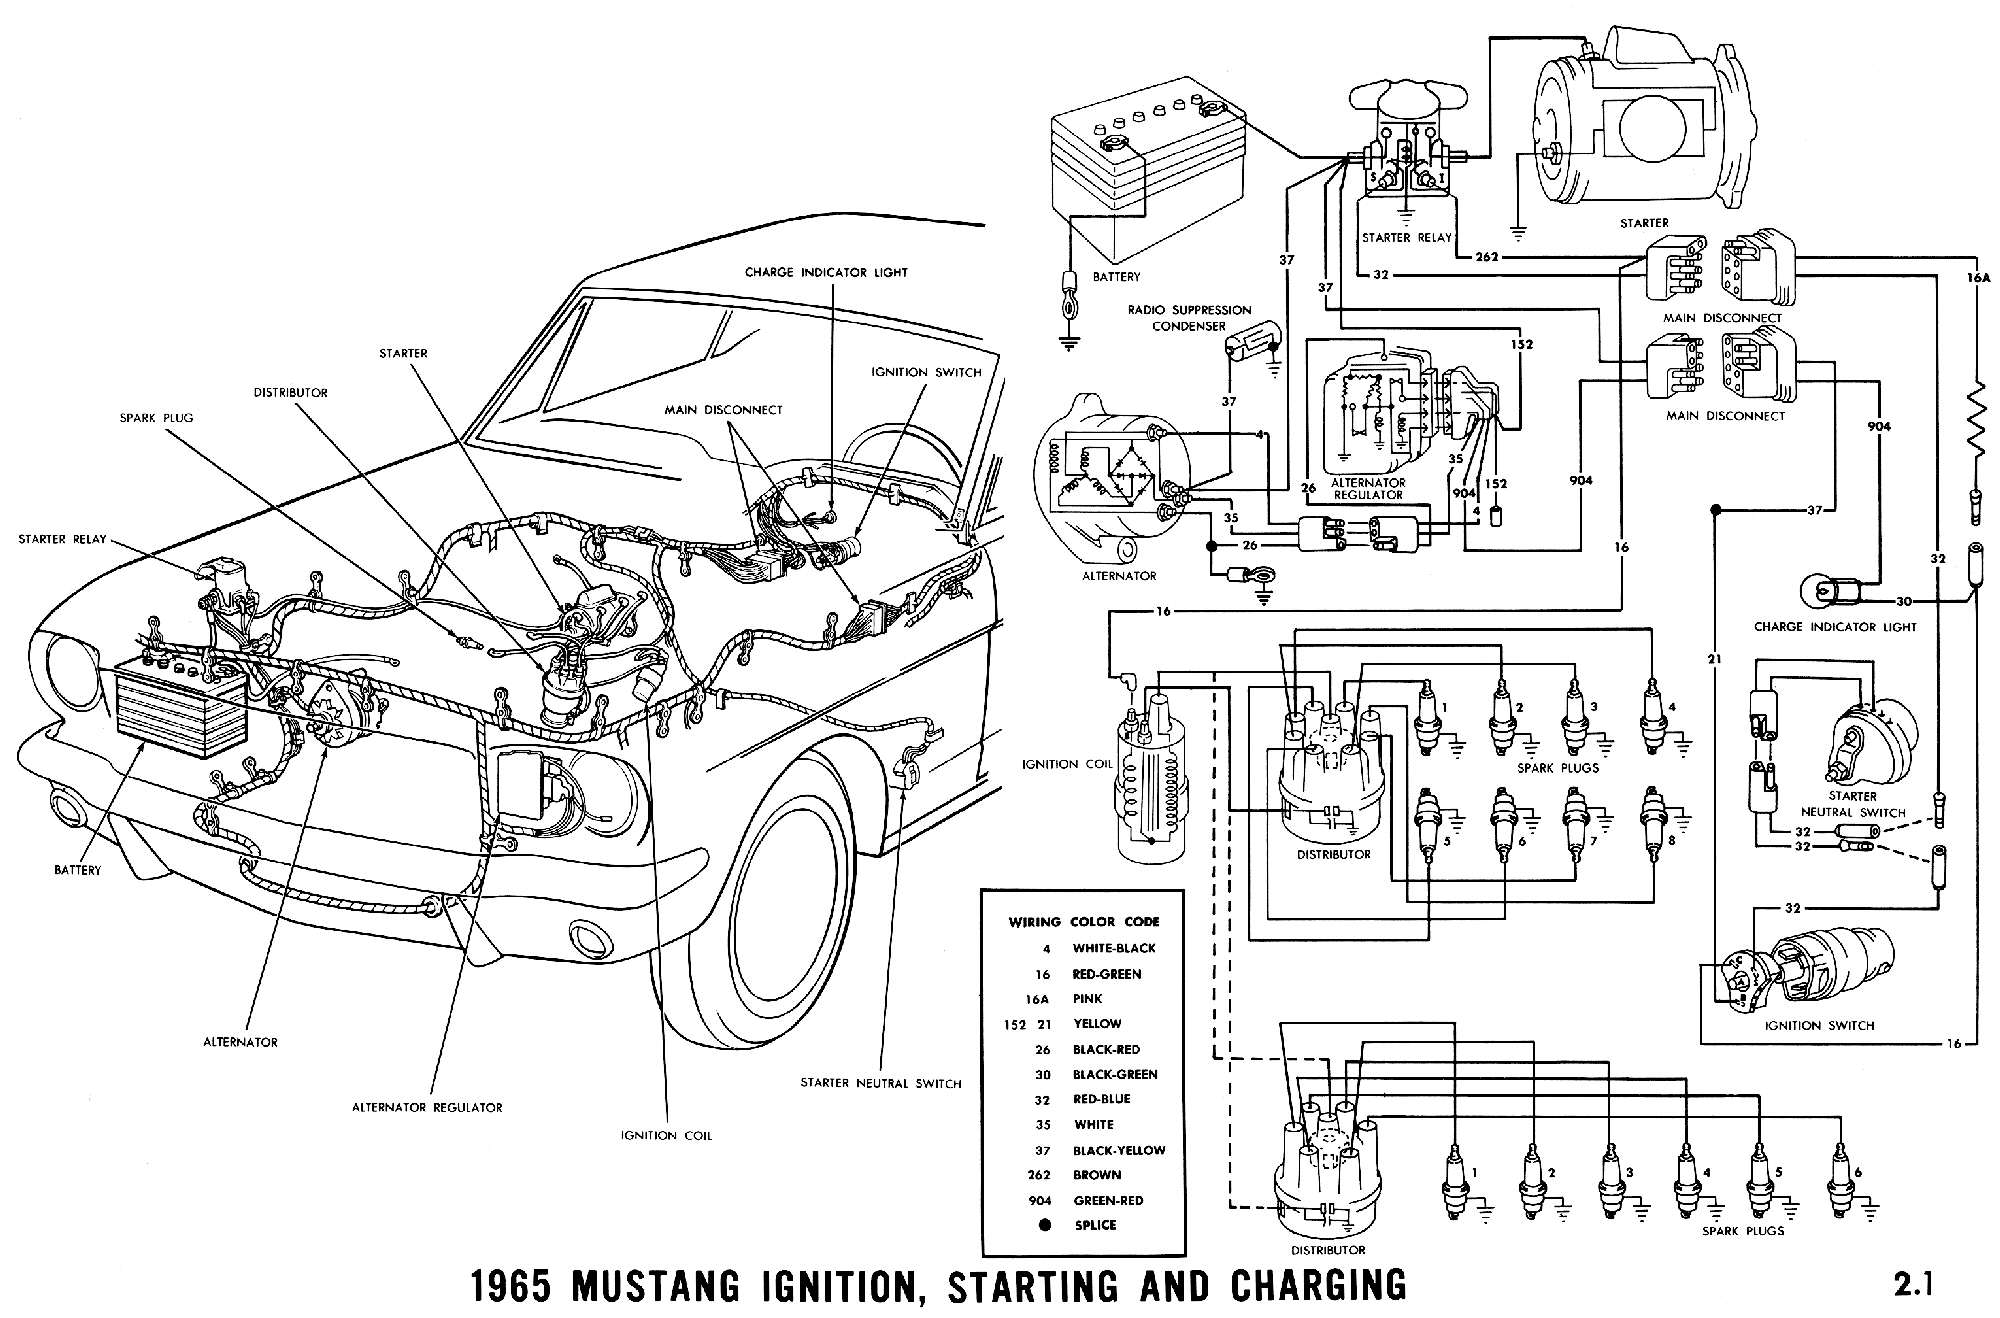 1965 mustang wiring diagrams average joe restoration 1965 mustang ignition starting and charging pictorial and schematic